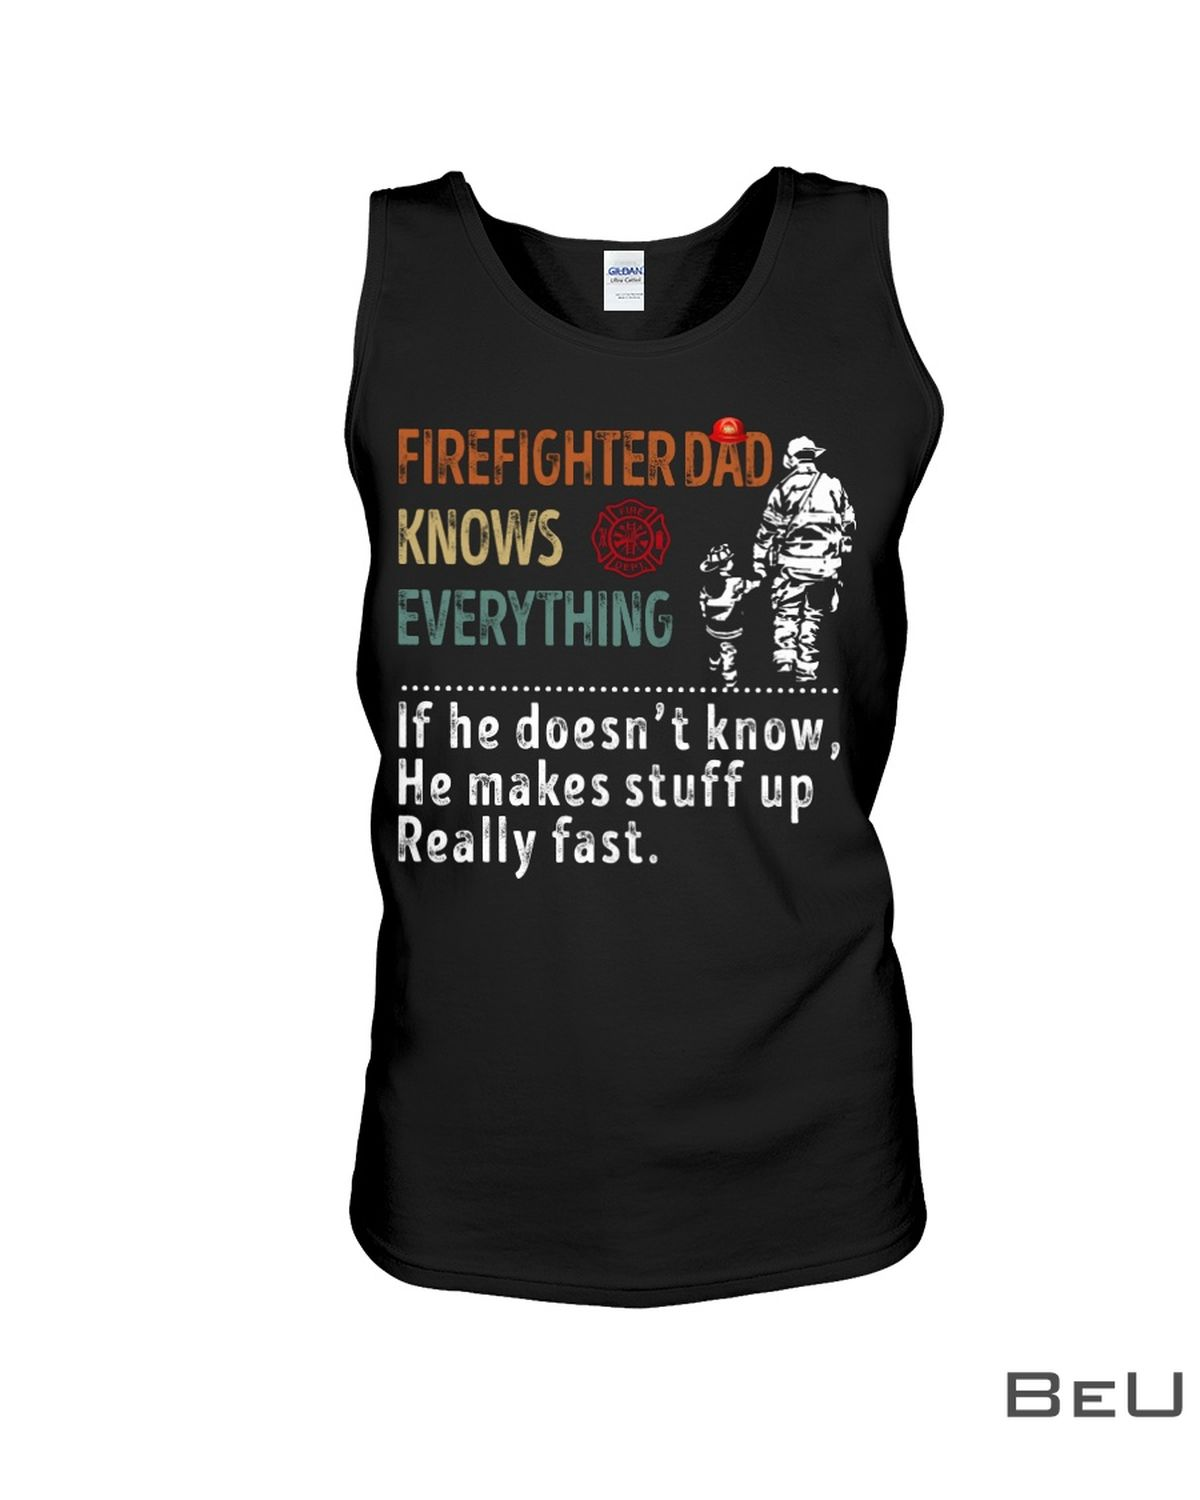 Firefighter Dad Knows Everything If He Doesn't Know He Makes Stuff Up Really Fast Shirtc